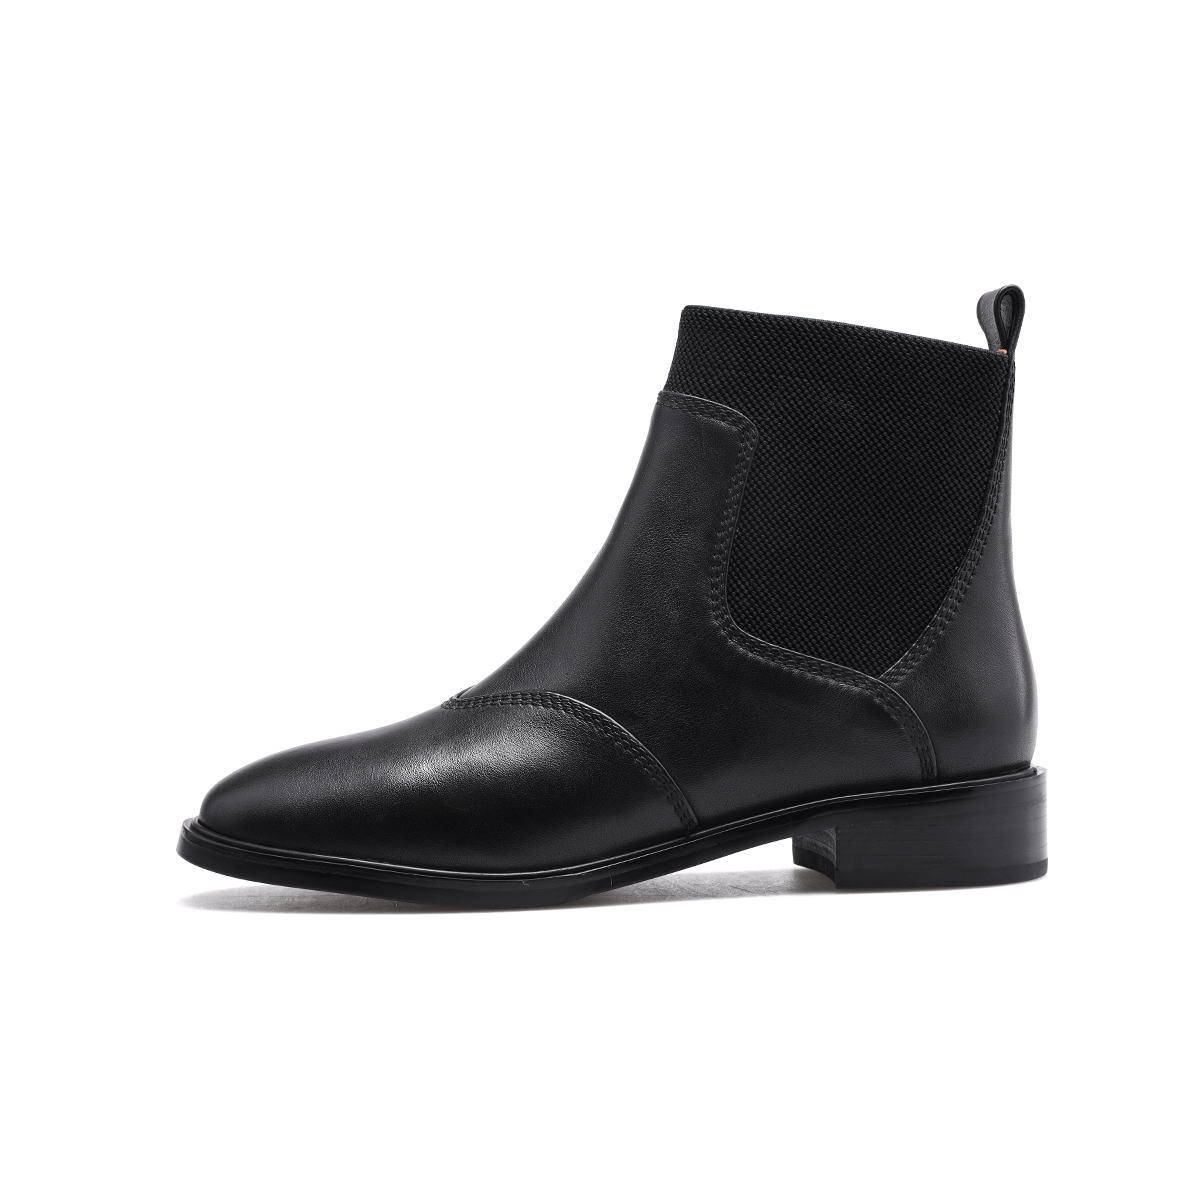 Pierre Cardin Martin boots womens English style leather flat sole single boots womens fall / winter 2020 versatile Chelsea short boots